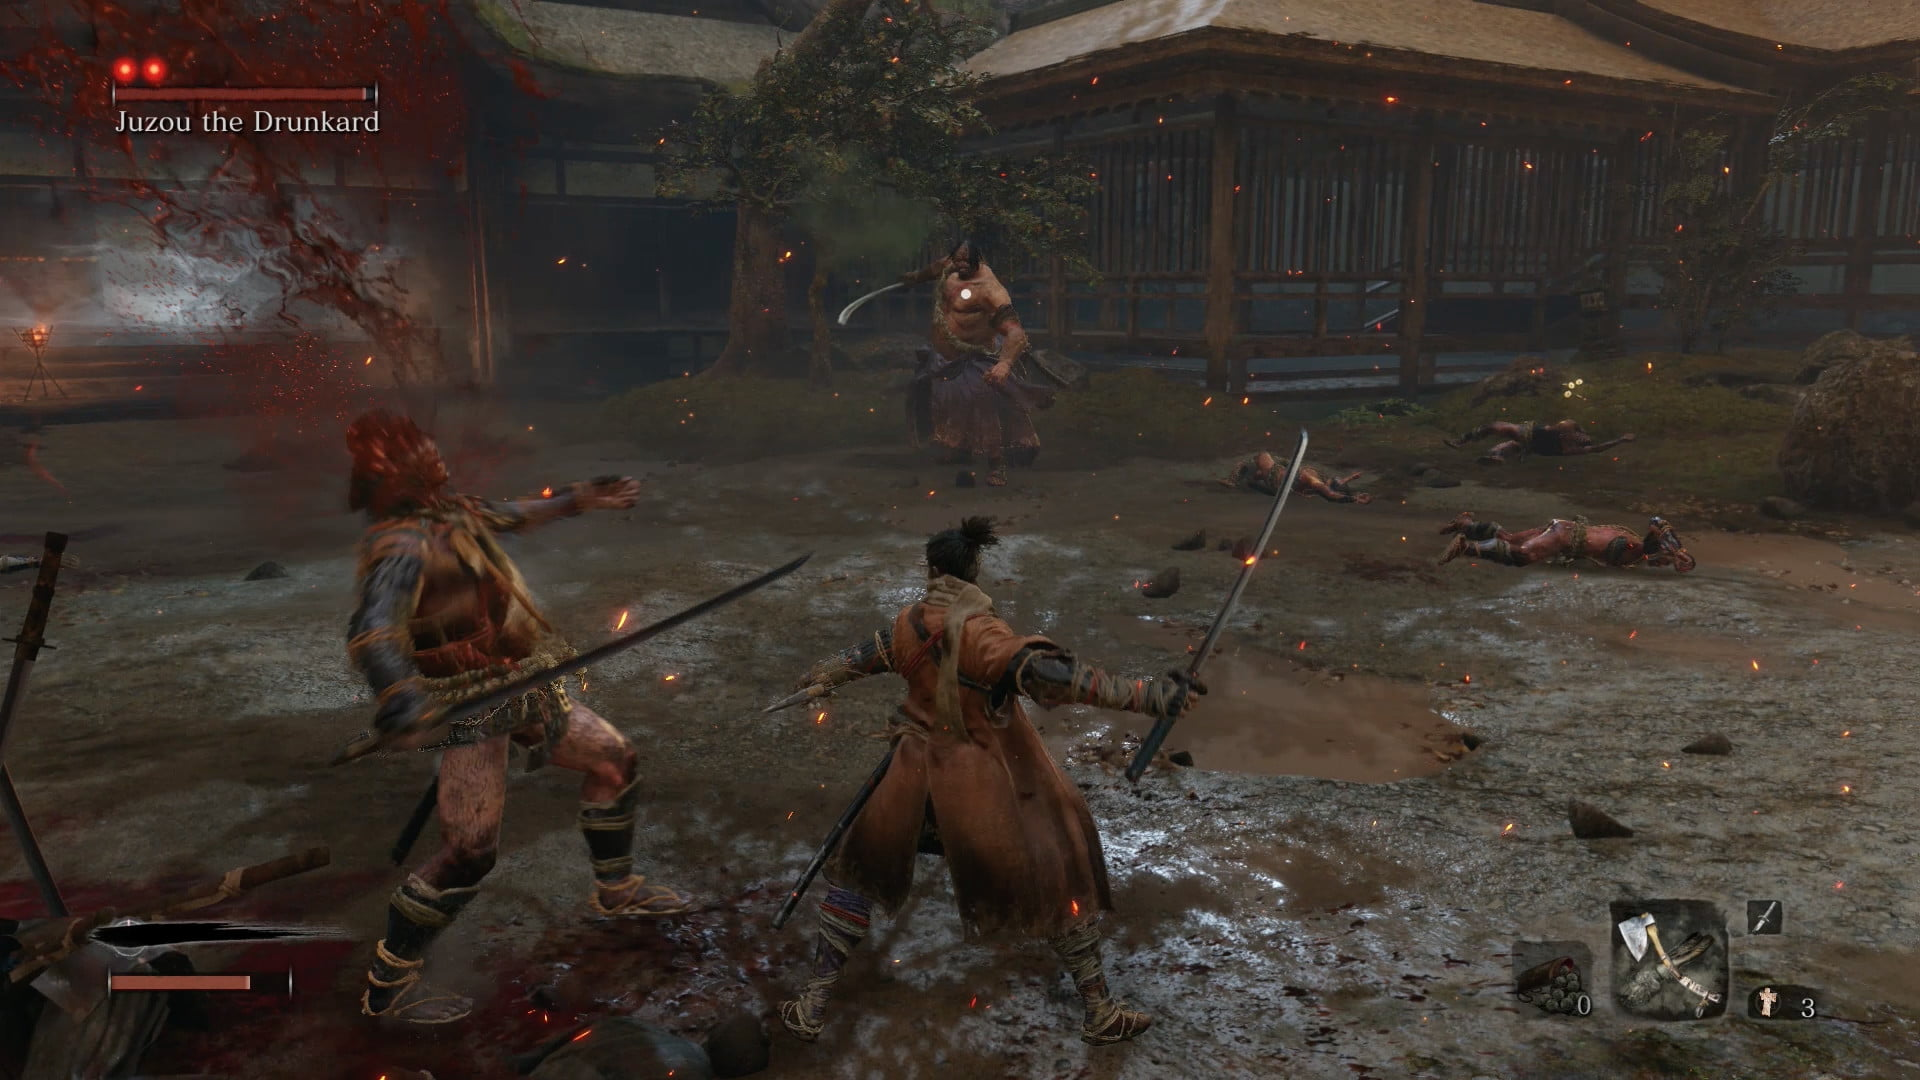 Clear out regular enemies first   How to beat Jouzou The Drunkard in Sekiro: Shadows Die Twice